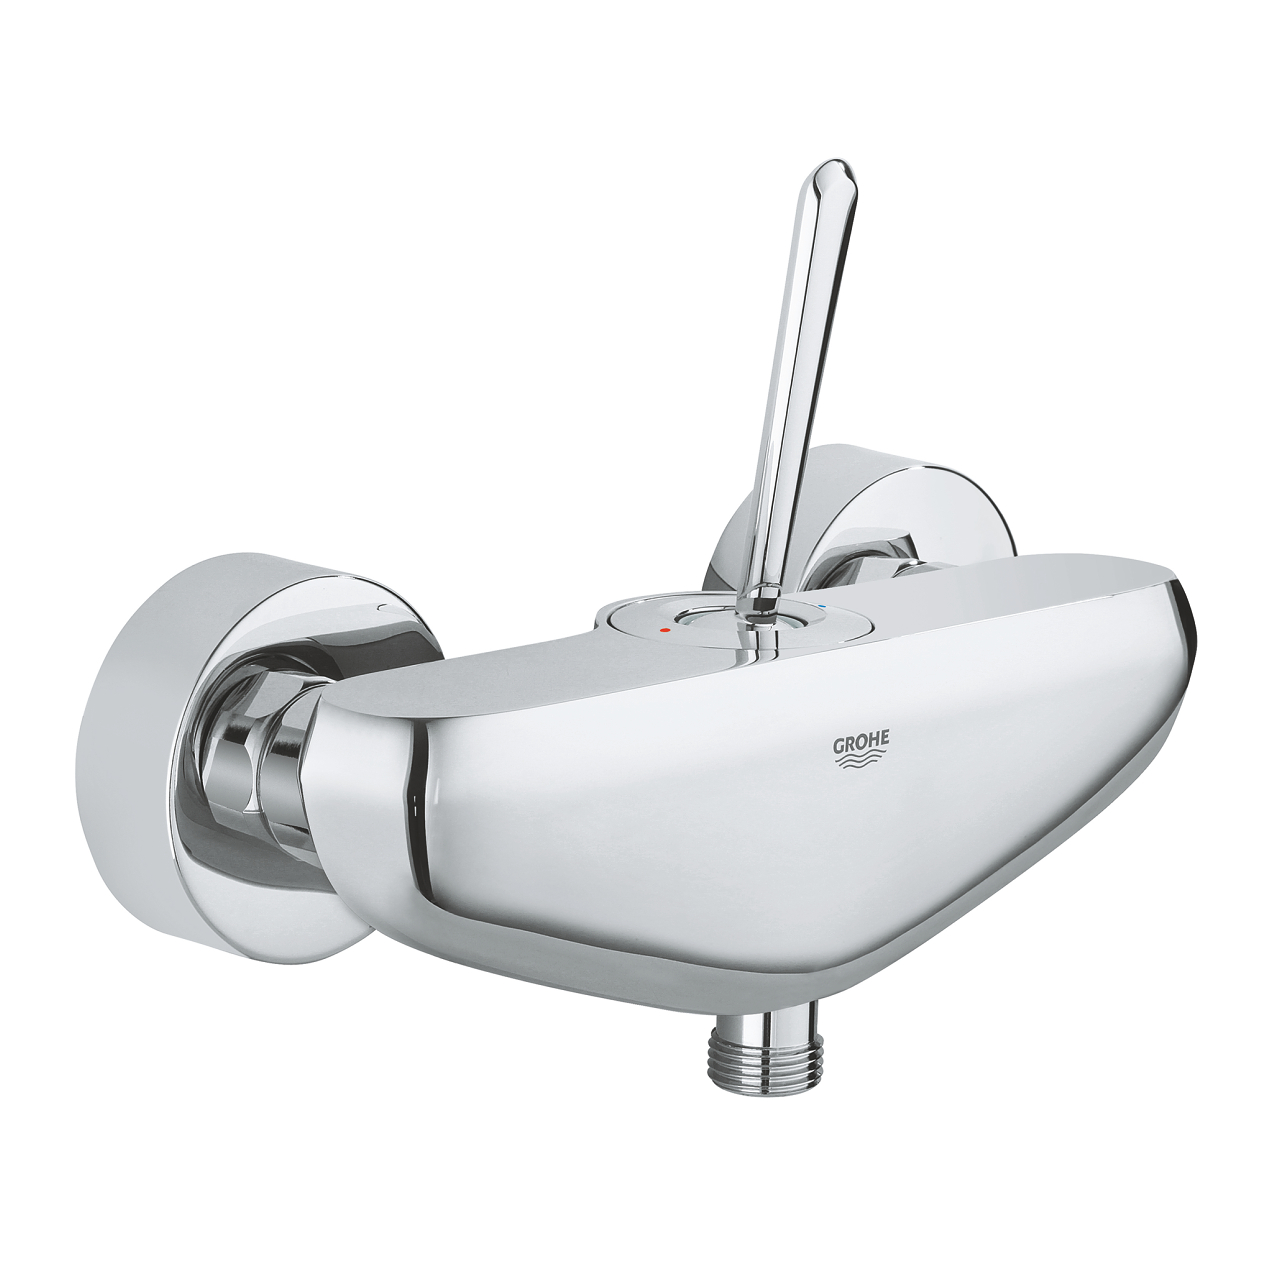 Grohe Eurodisc Joy Shower Mixer Tap (Chrome)